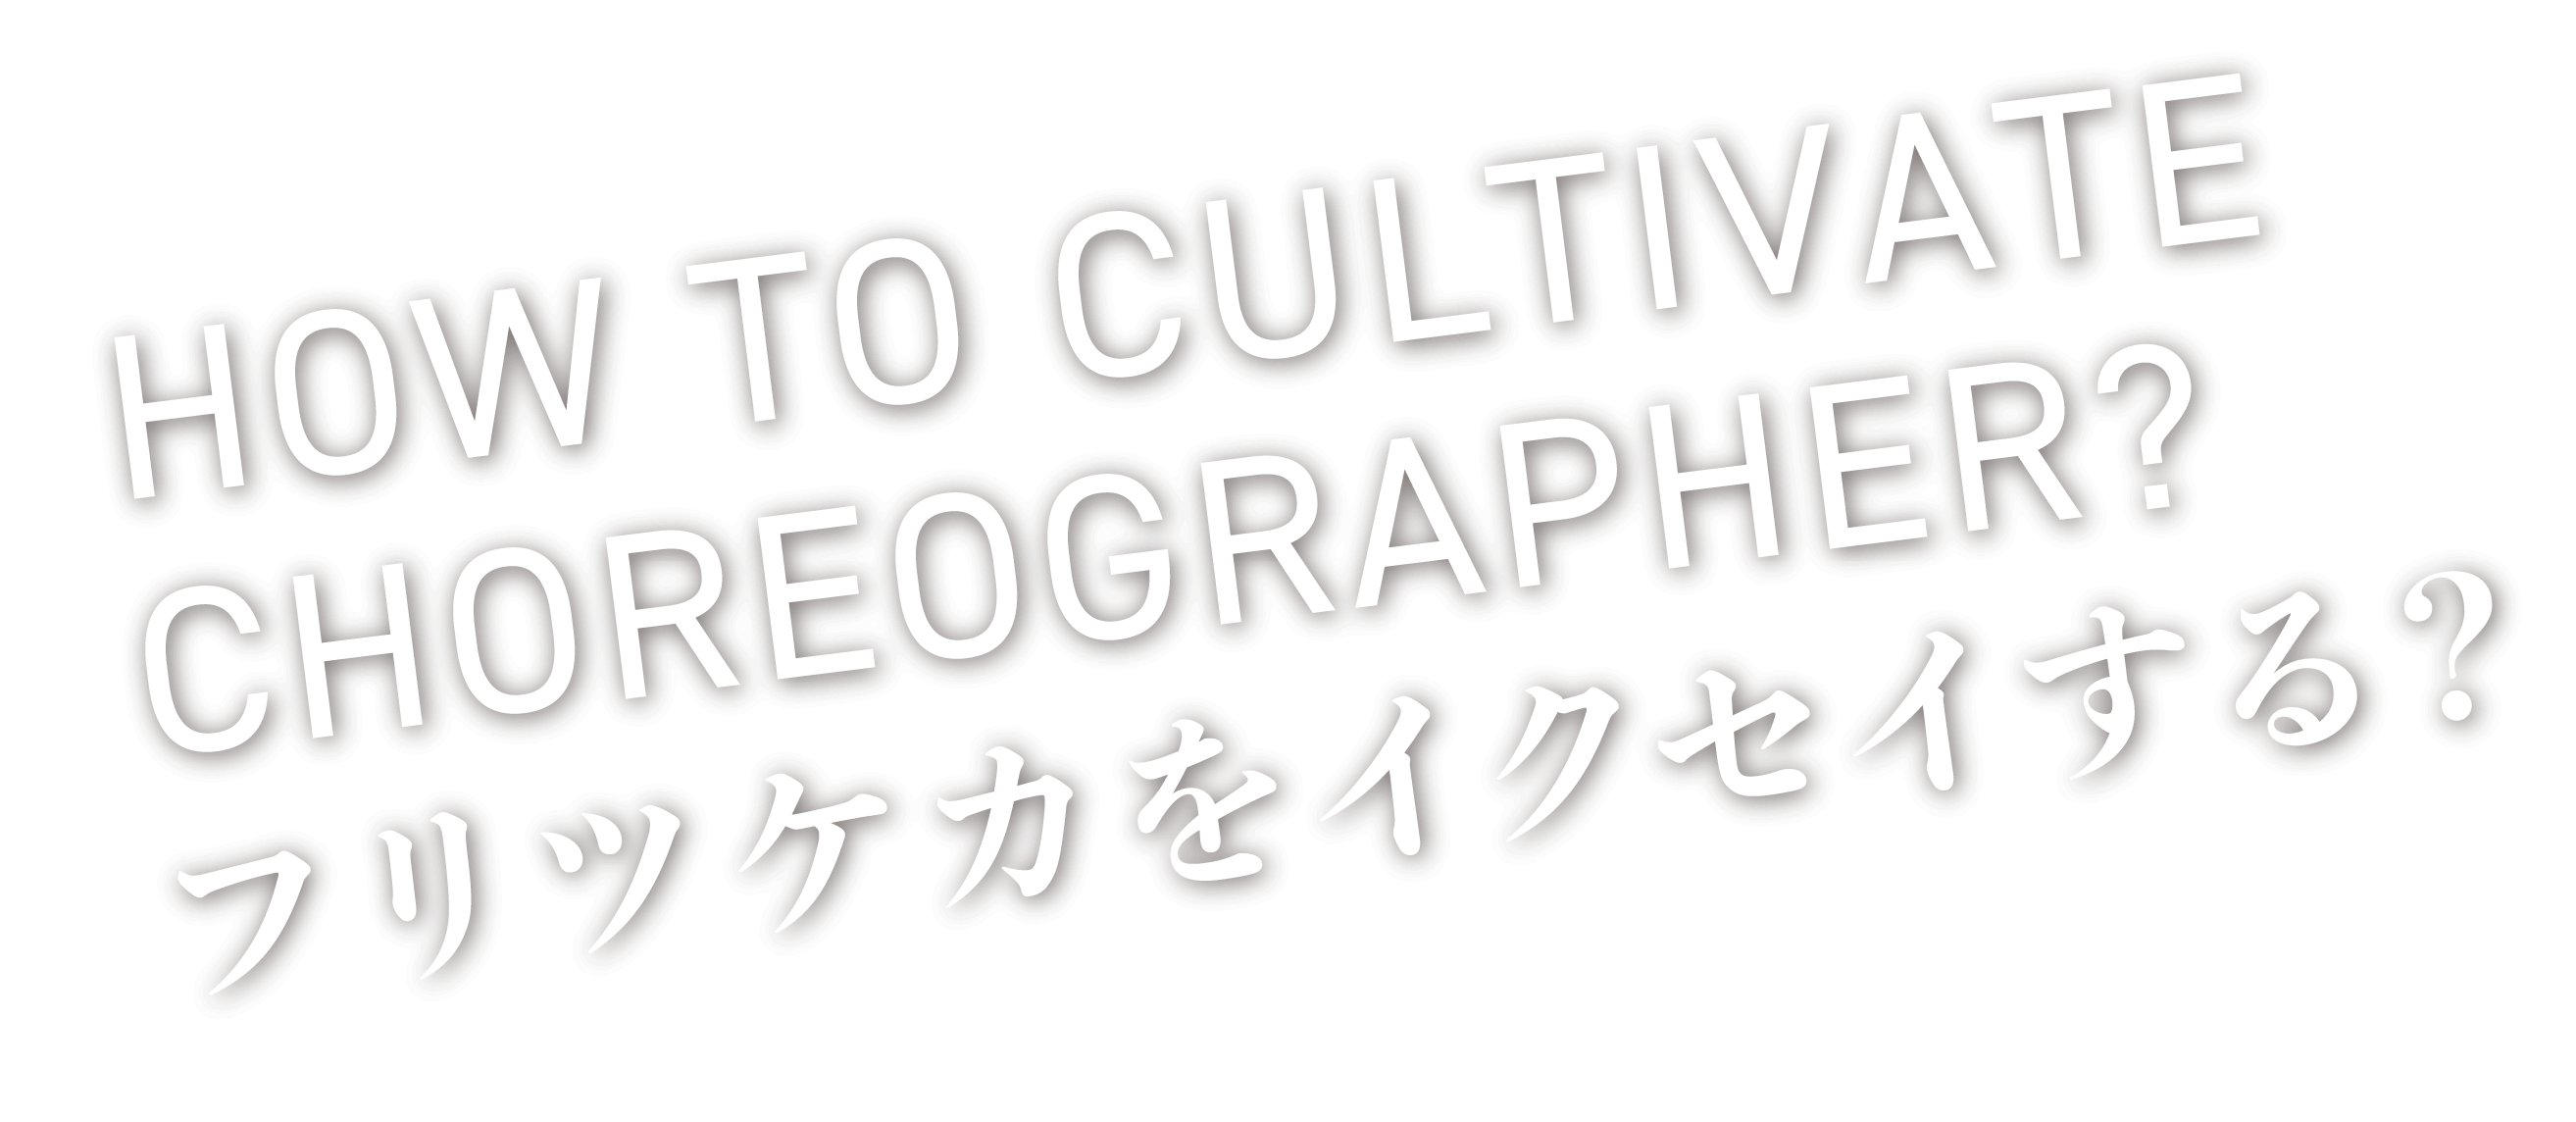 HOW TO CULTIVATE CHOREOGRAPHER? フリツケカをイクセイする?